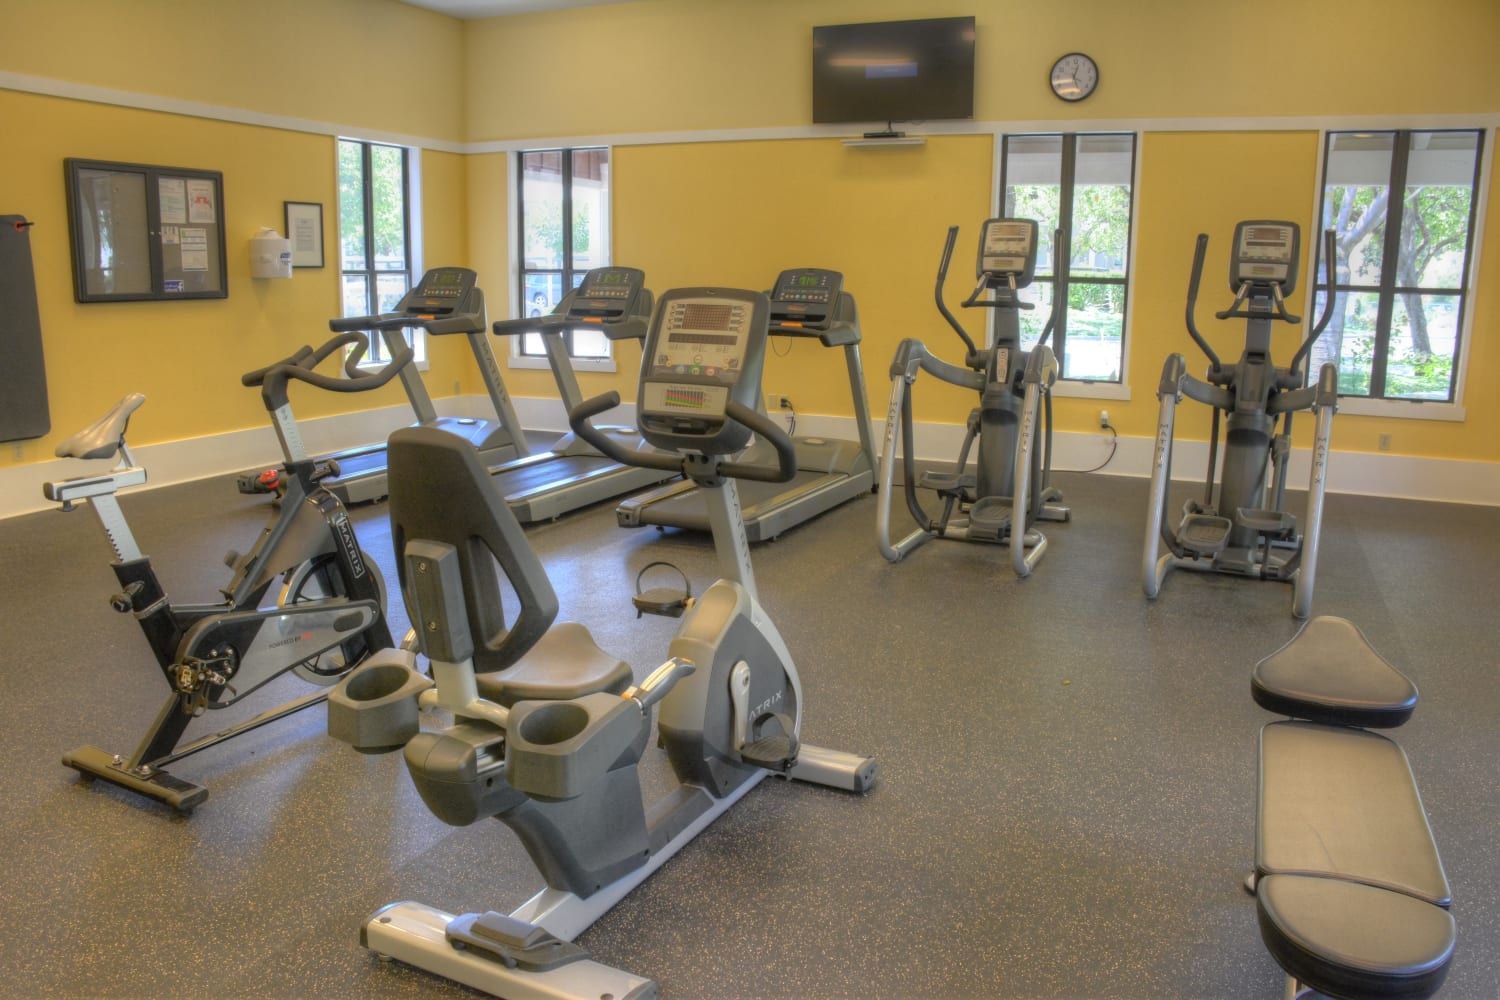 Cotton Wood Apartments in Dublin, California, offer a fitness center